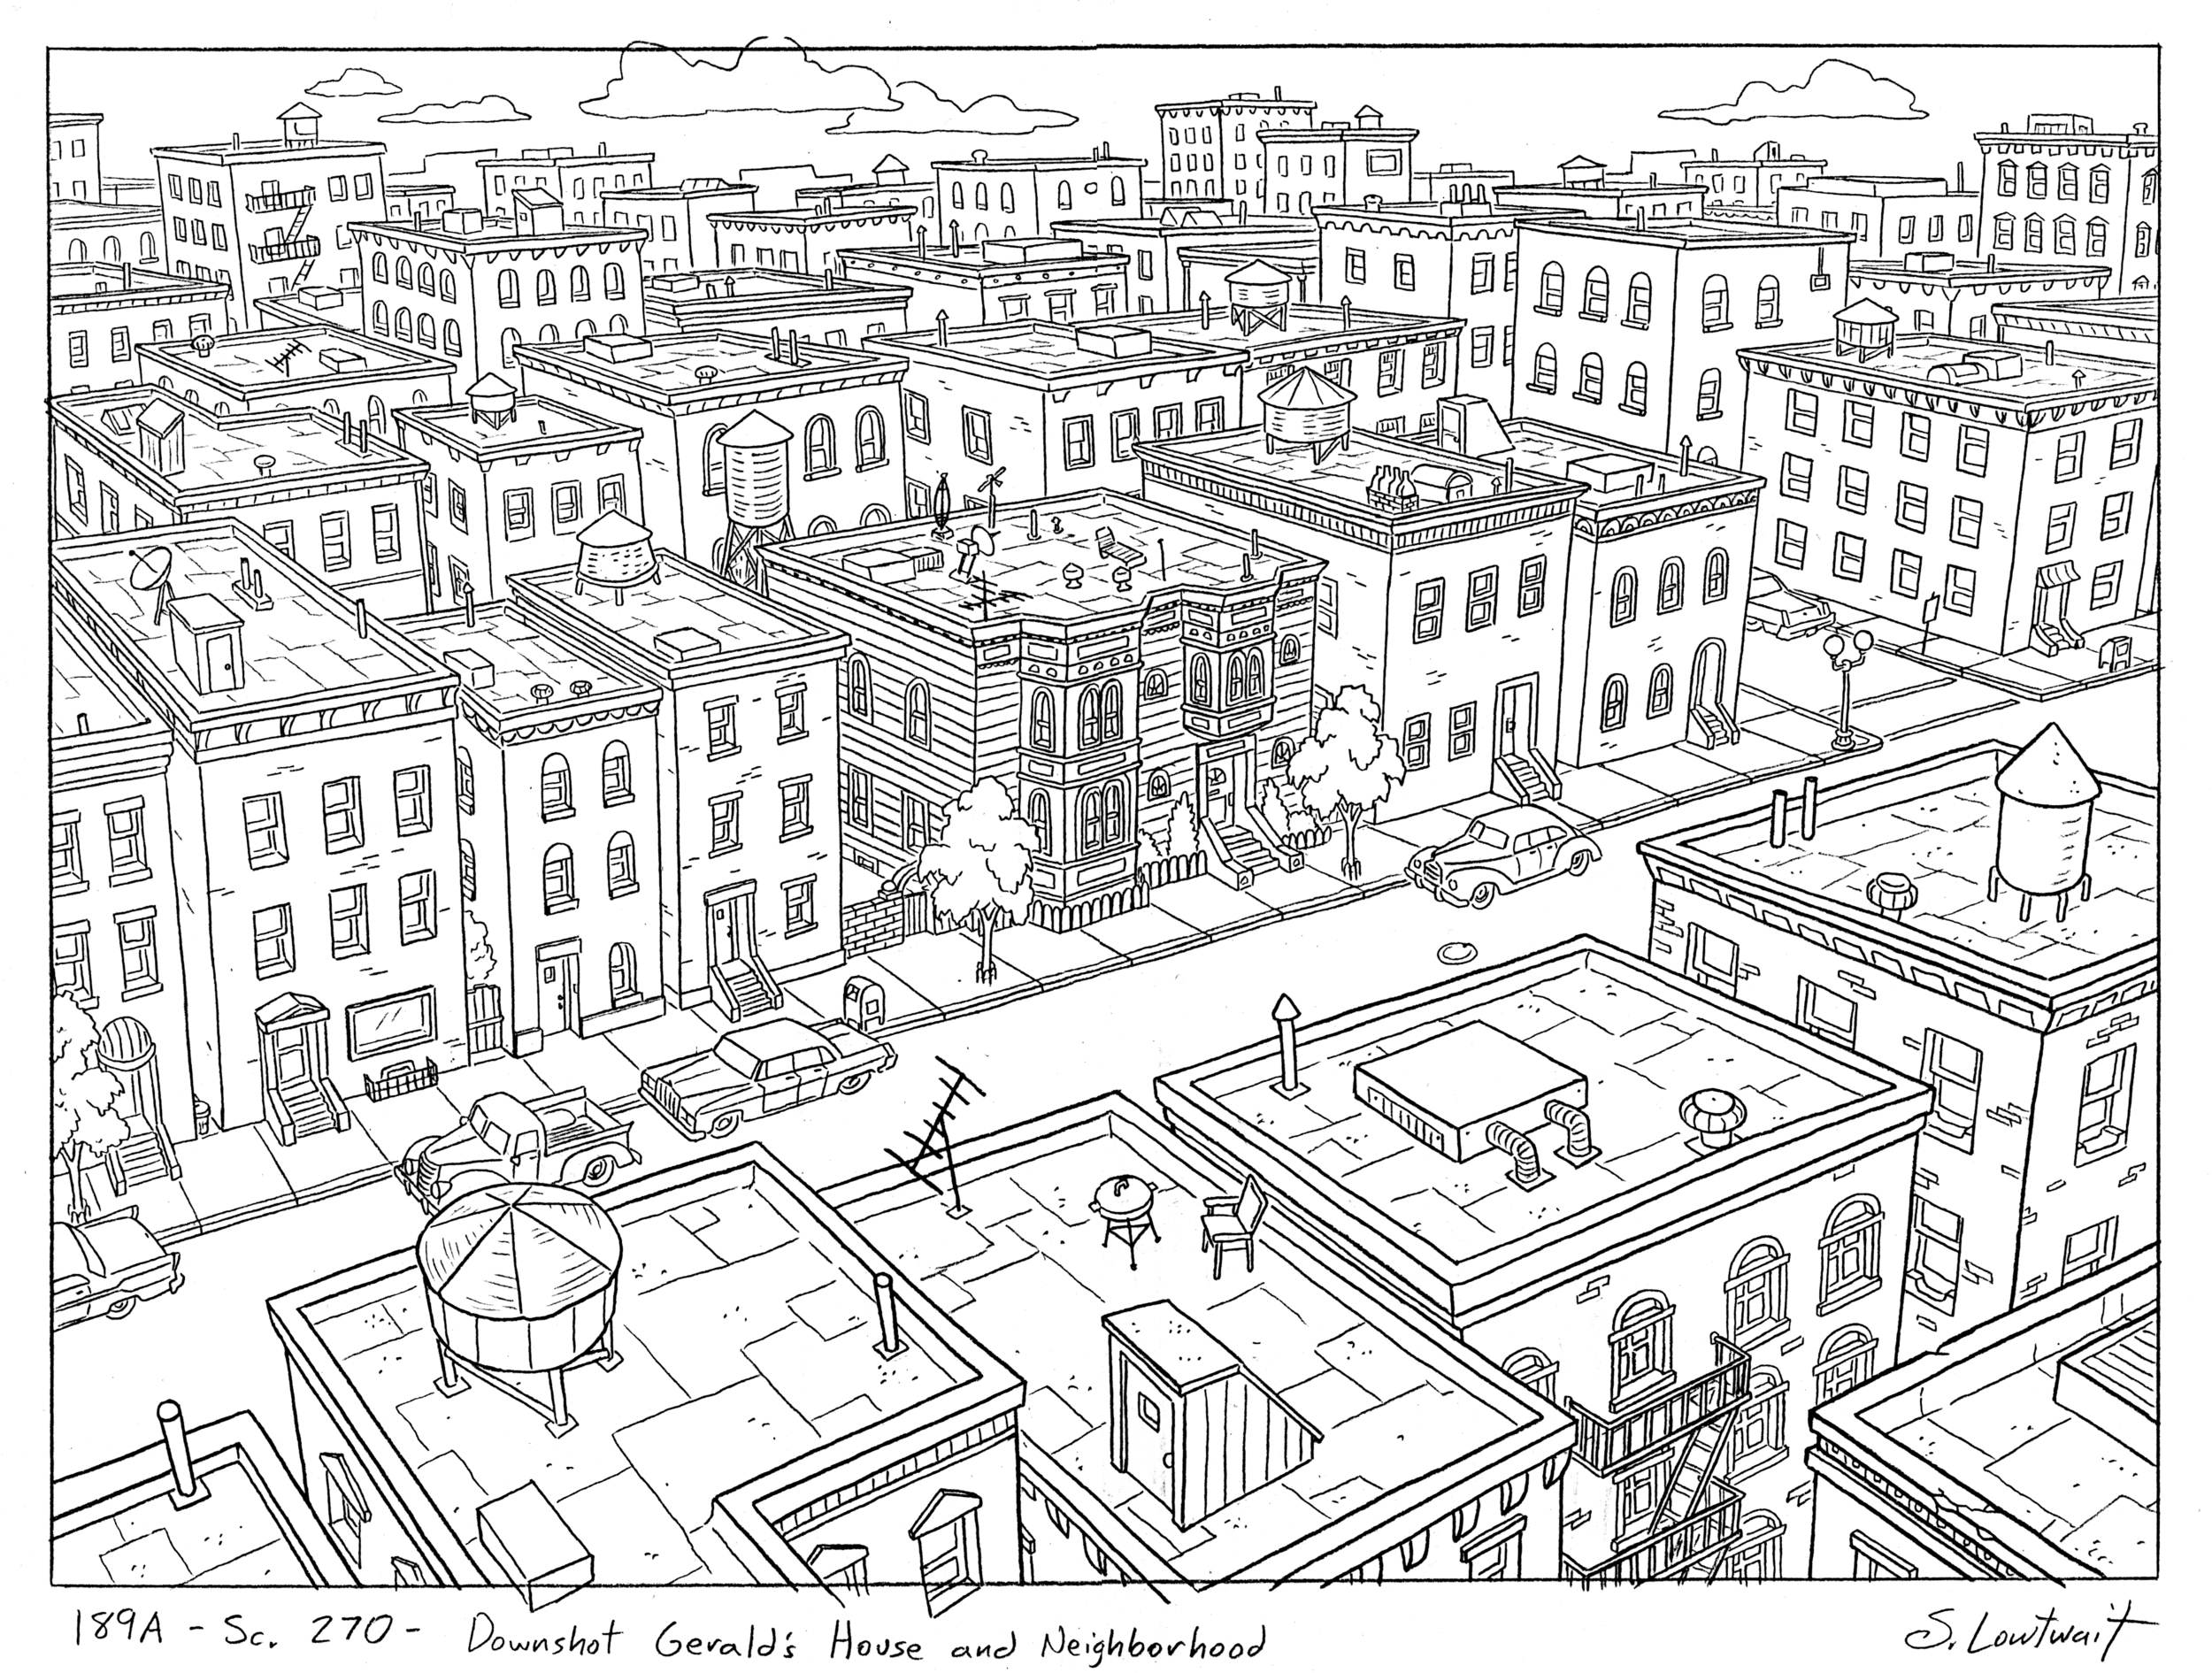 Gerald's house and neighborhood. These grand cityscapes full of windows took serious time.